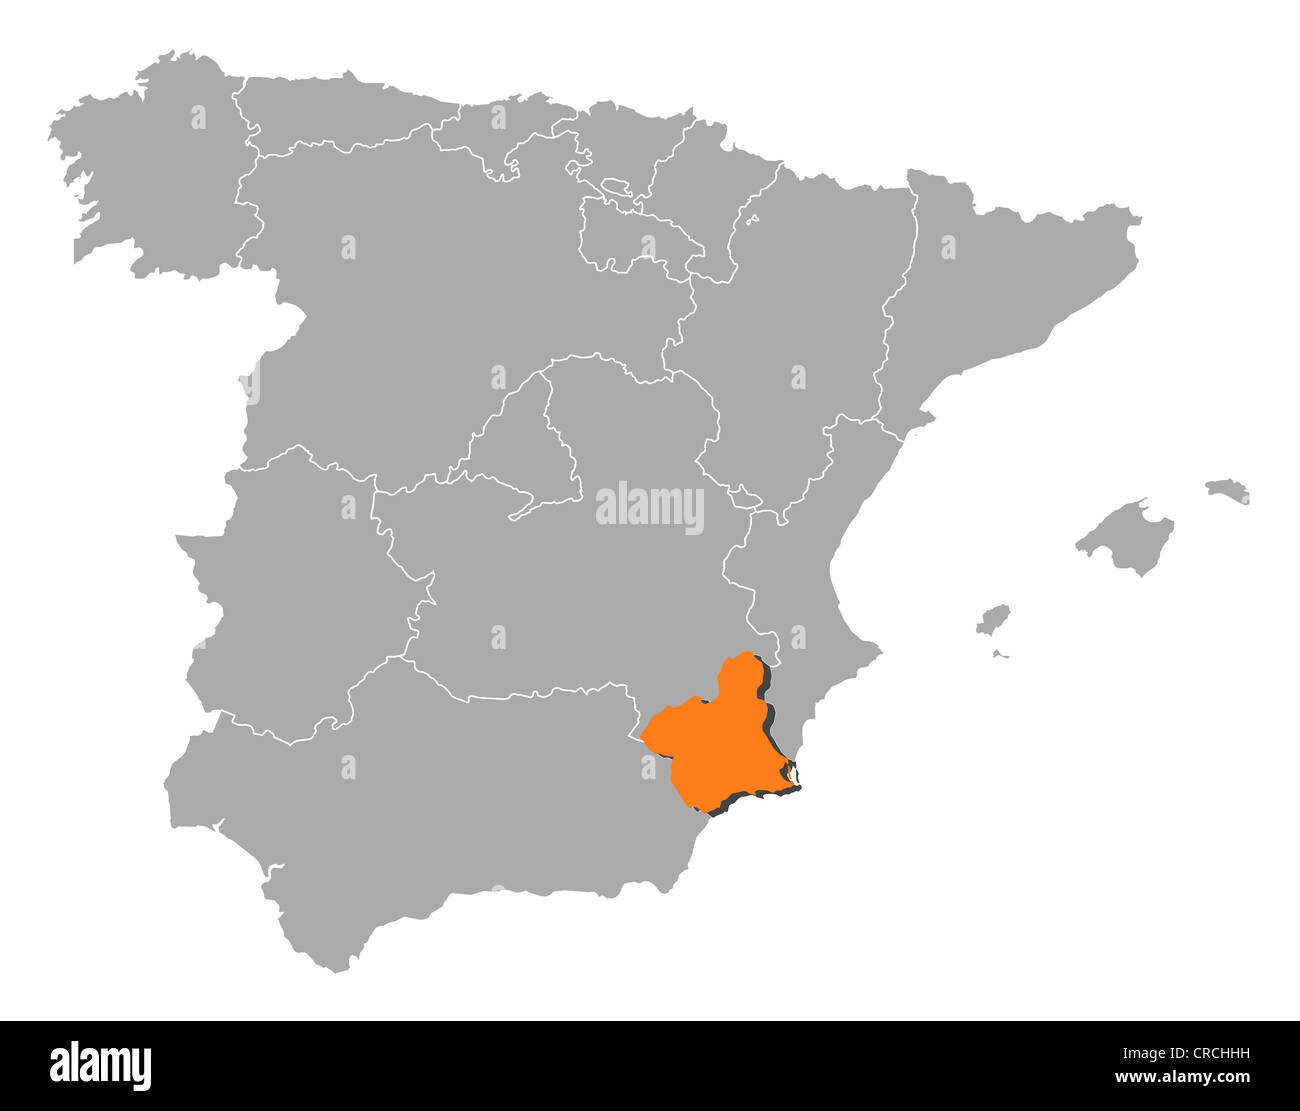 Murcia Map Of Spain.Political Map Of Spain With The Several Regions Where Murcia Is